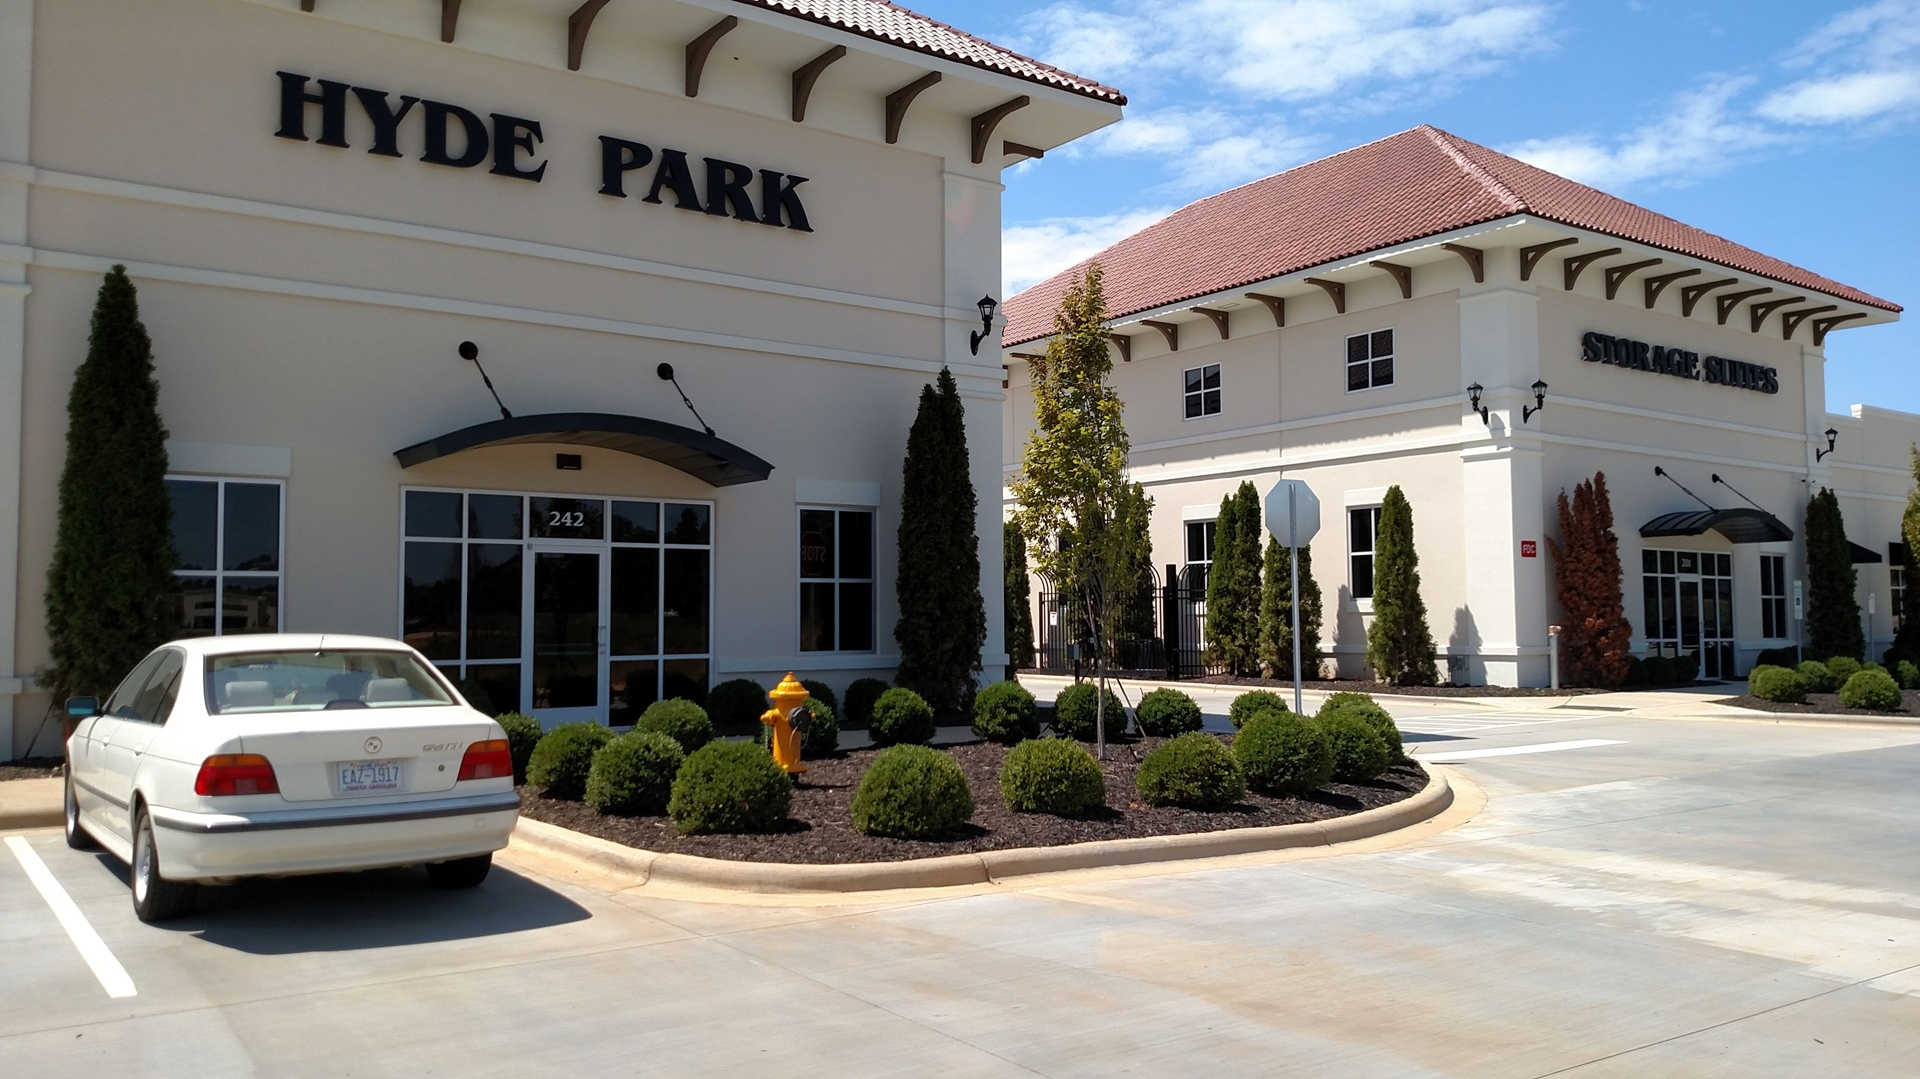 Hyde Park Storage for Sale Lake Norman NC